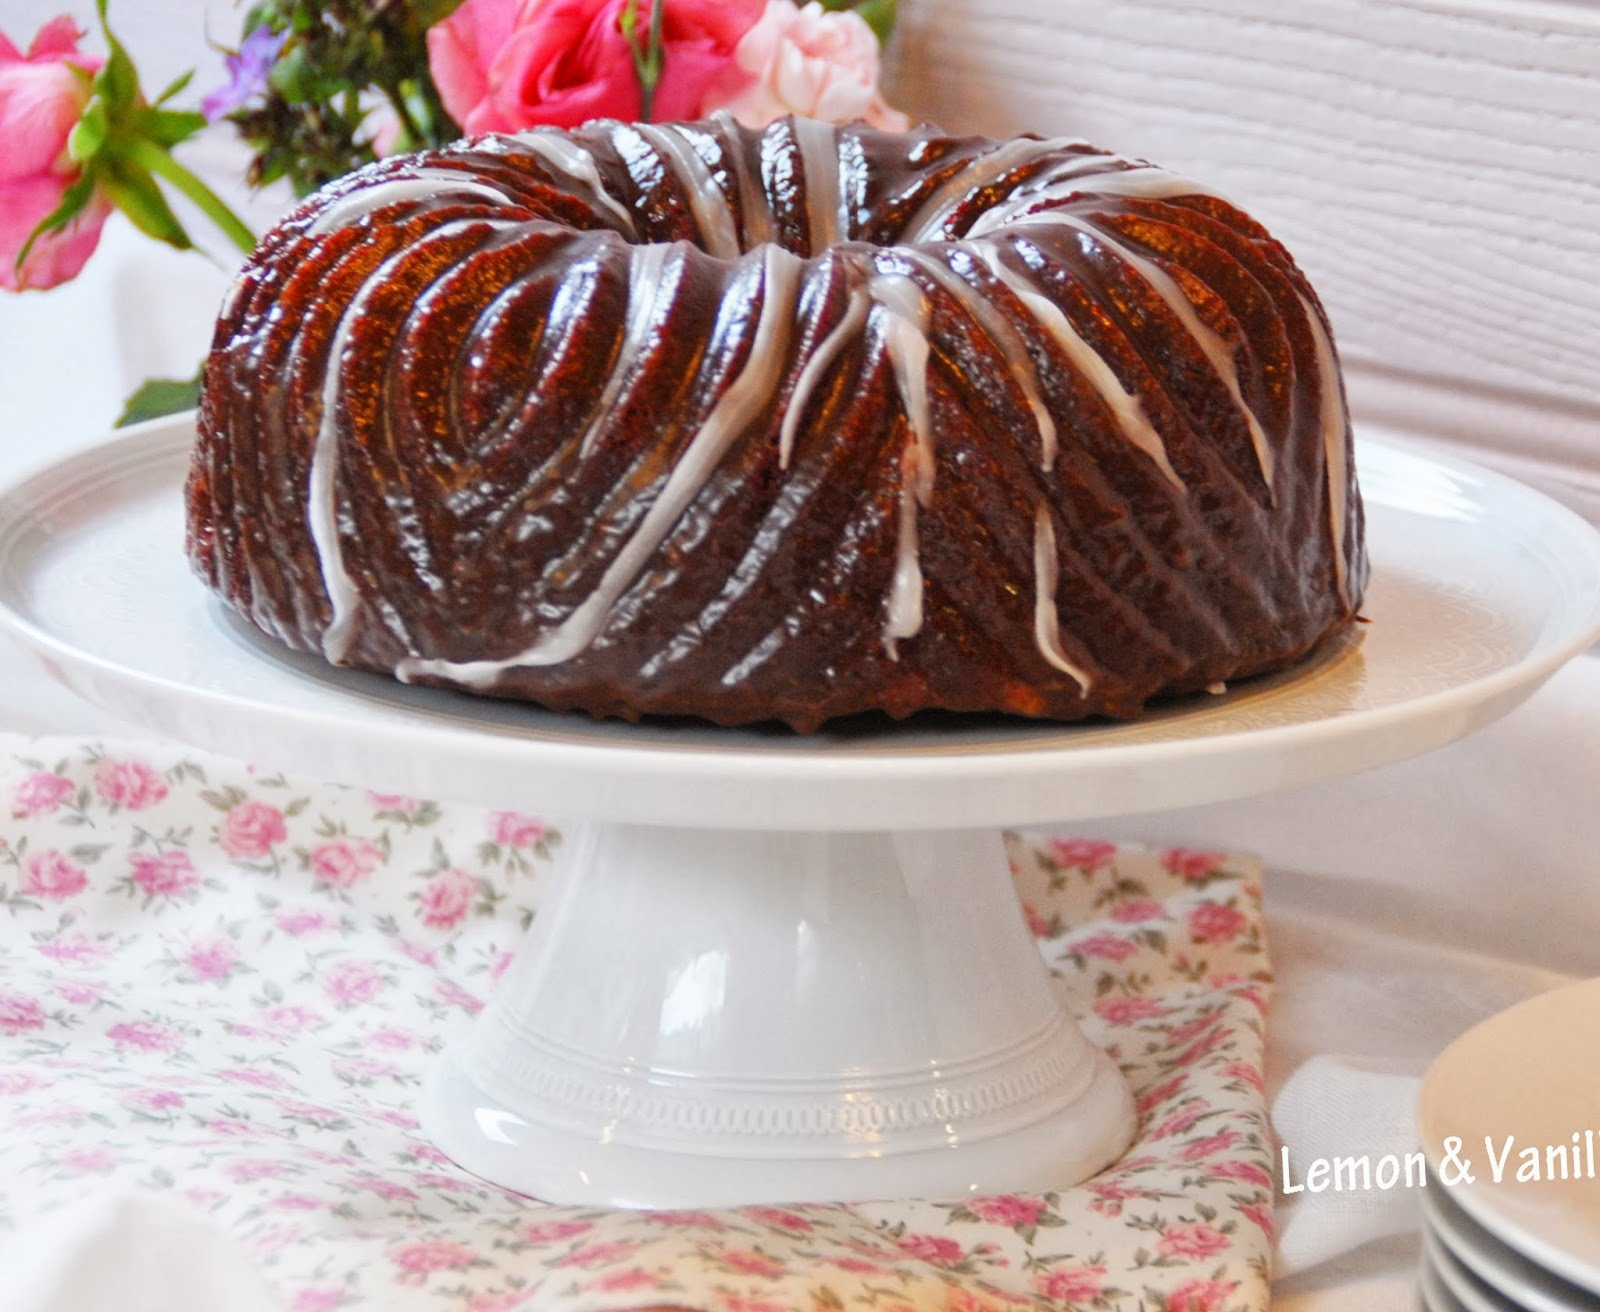 Red velvet zebra bundt cake with chocolate glaze / Bundt cake zebra red velvet, com cobertura de chocolate.